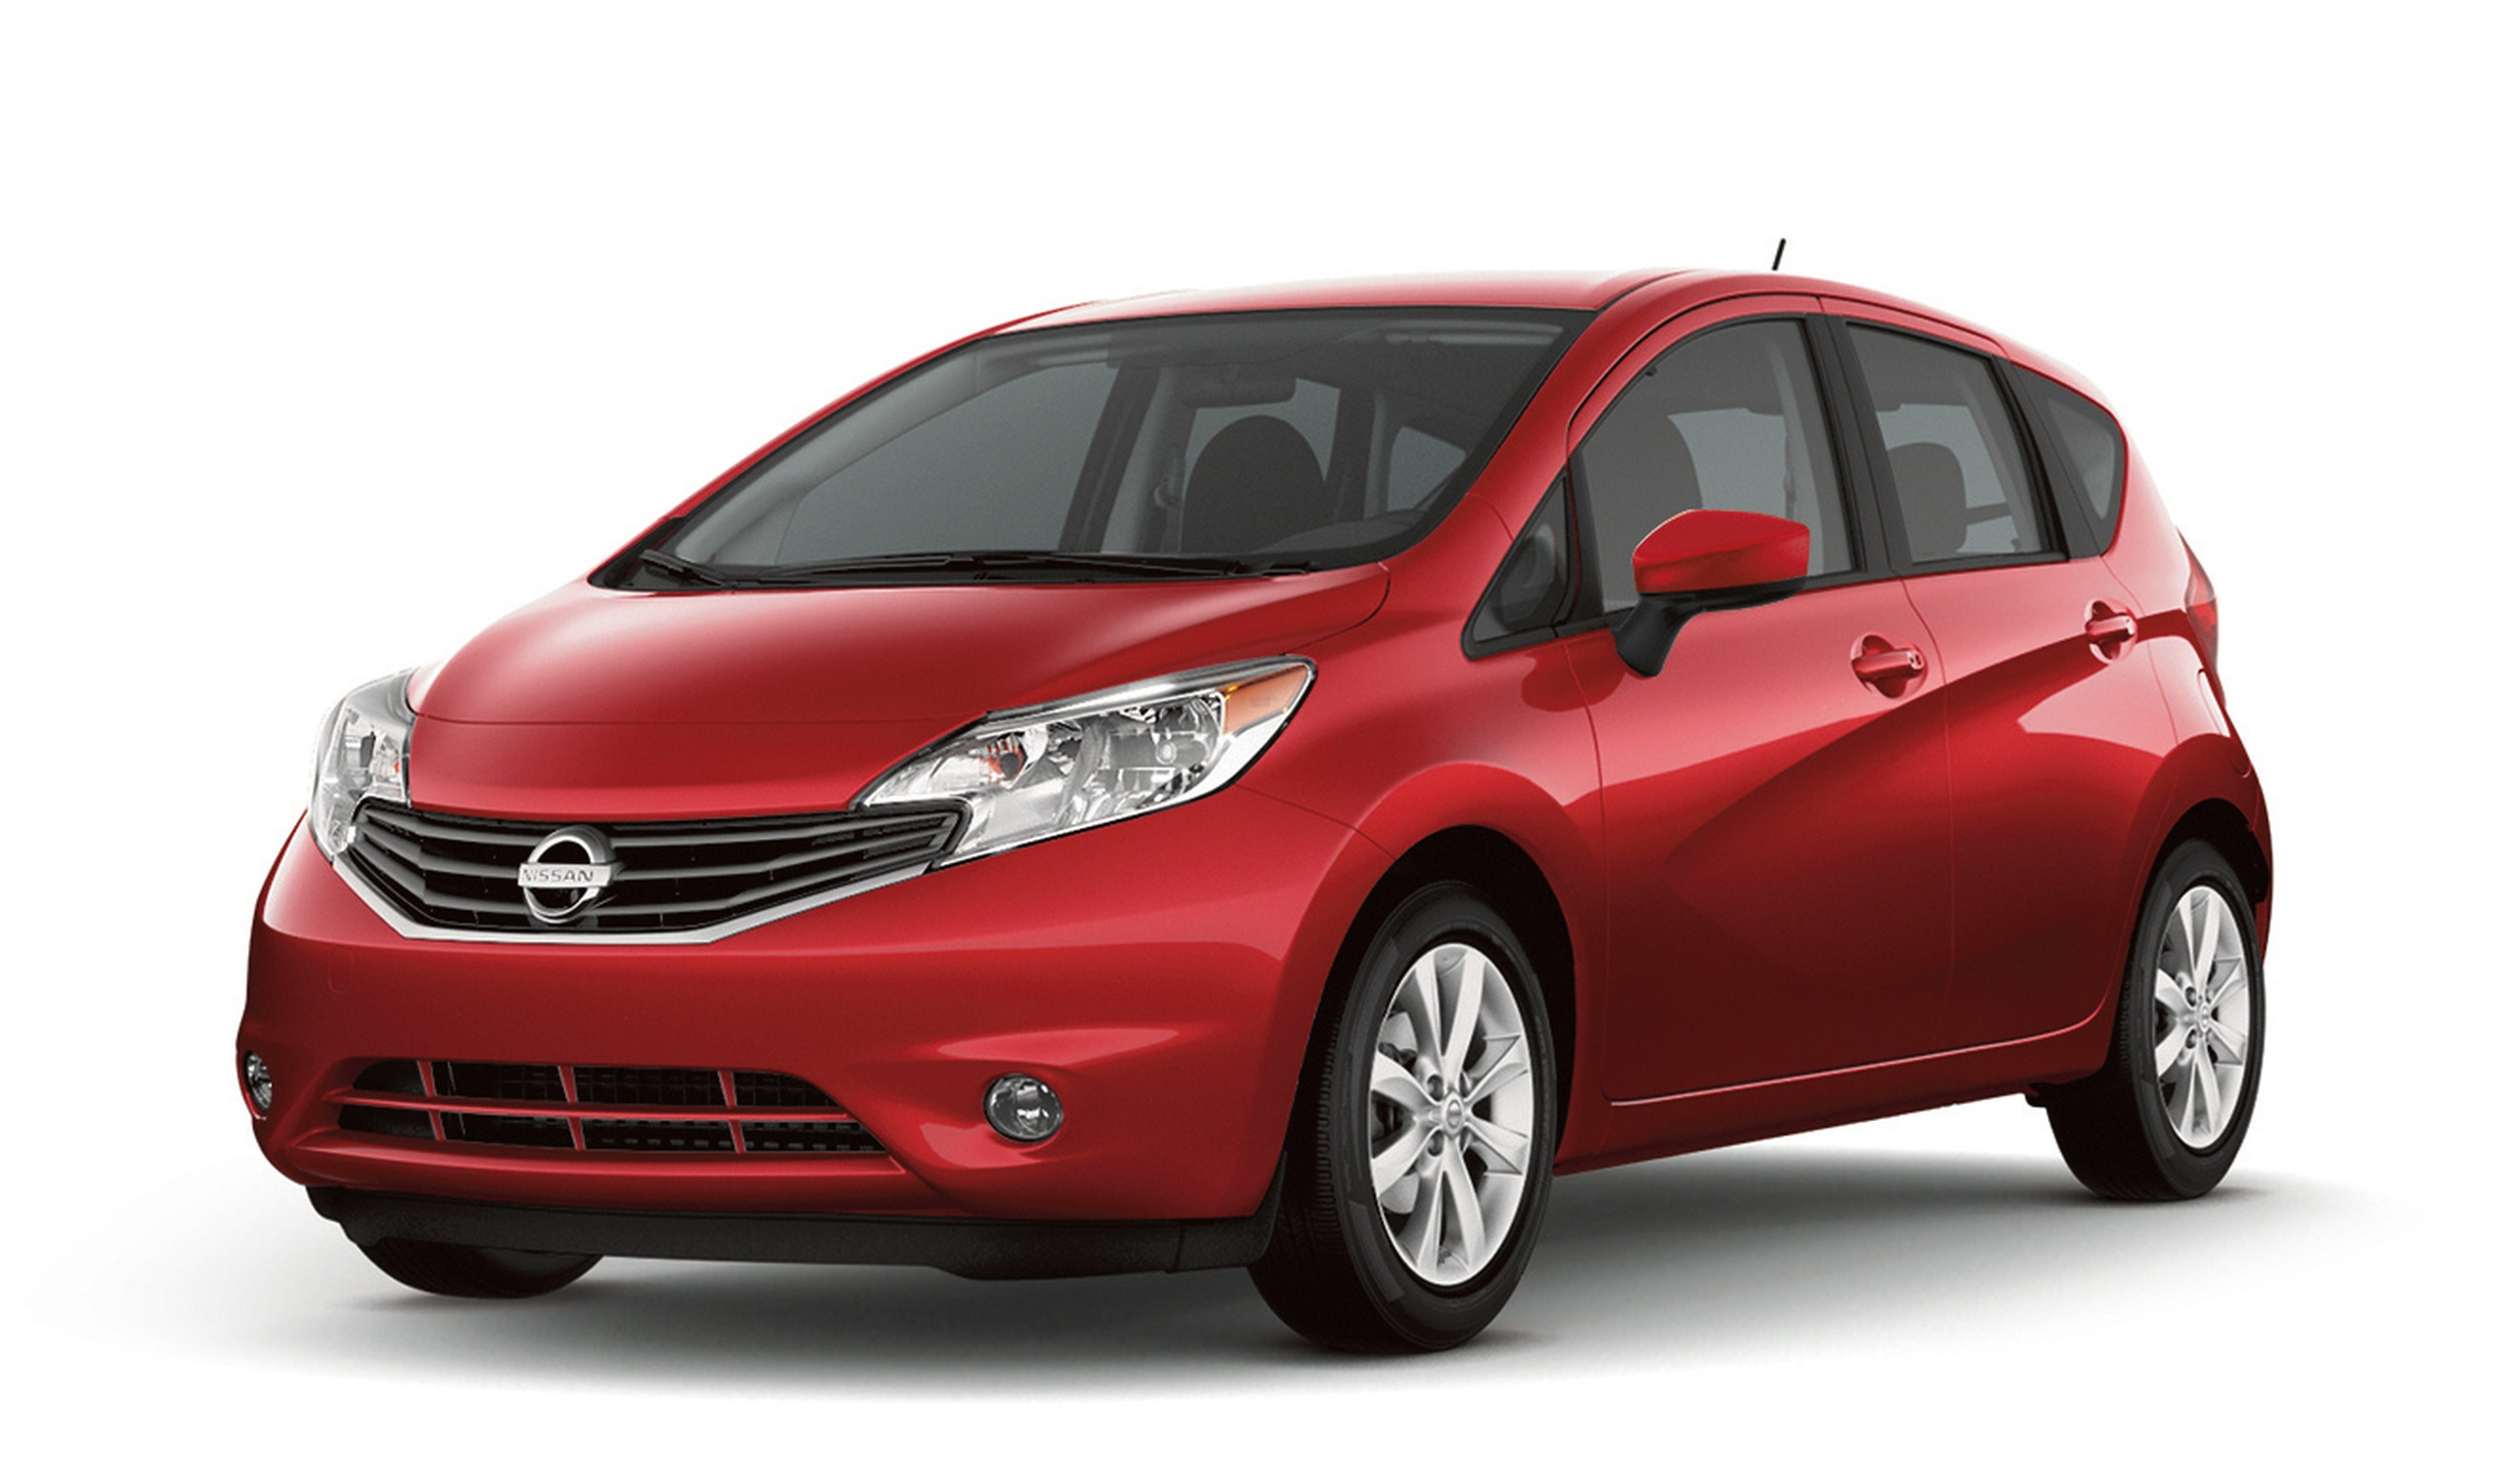 avis car hire rent a compact car in canada for your holiday. Black Bedroom Furniture Sets. Home Design Ideas